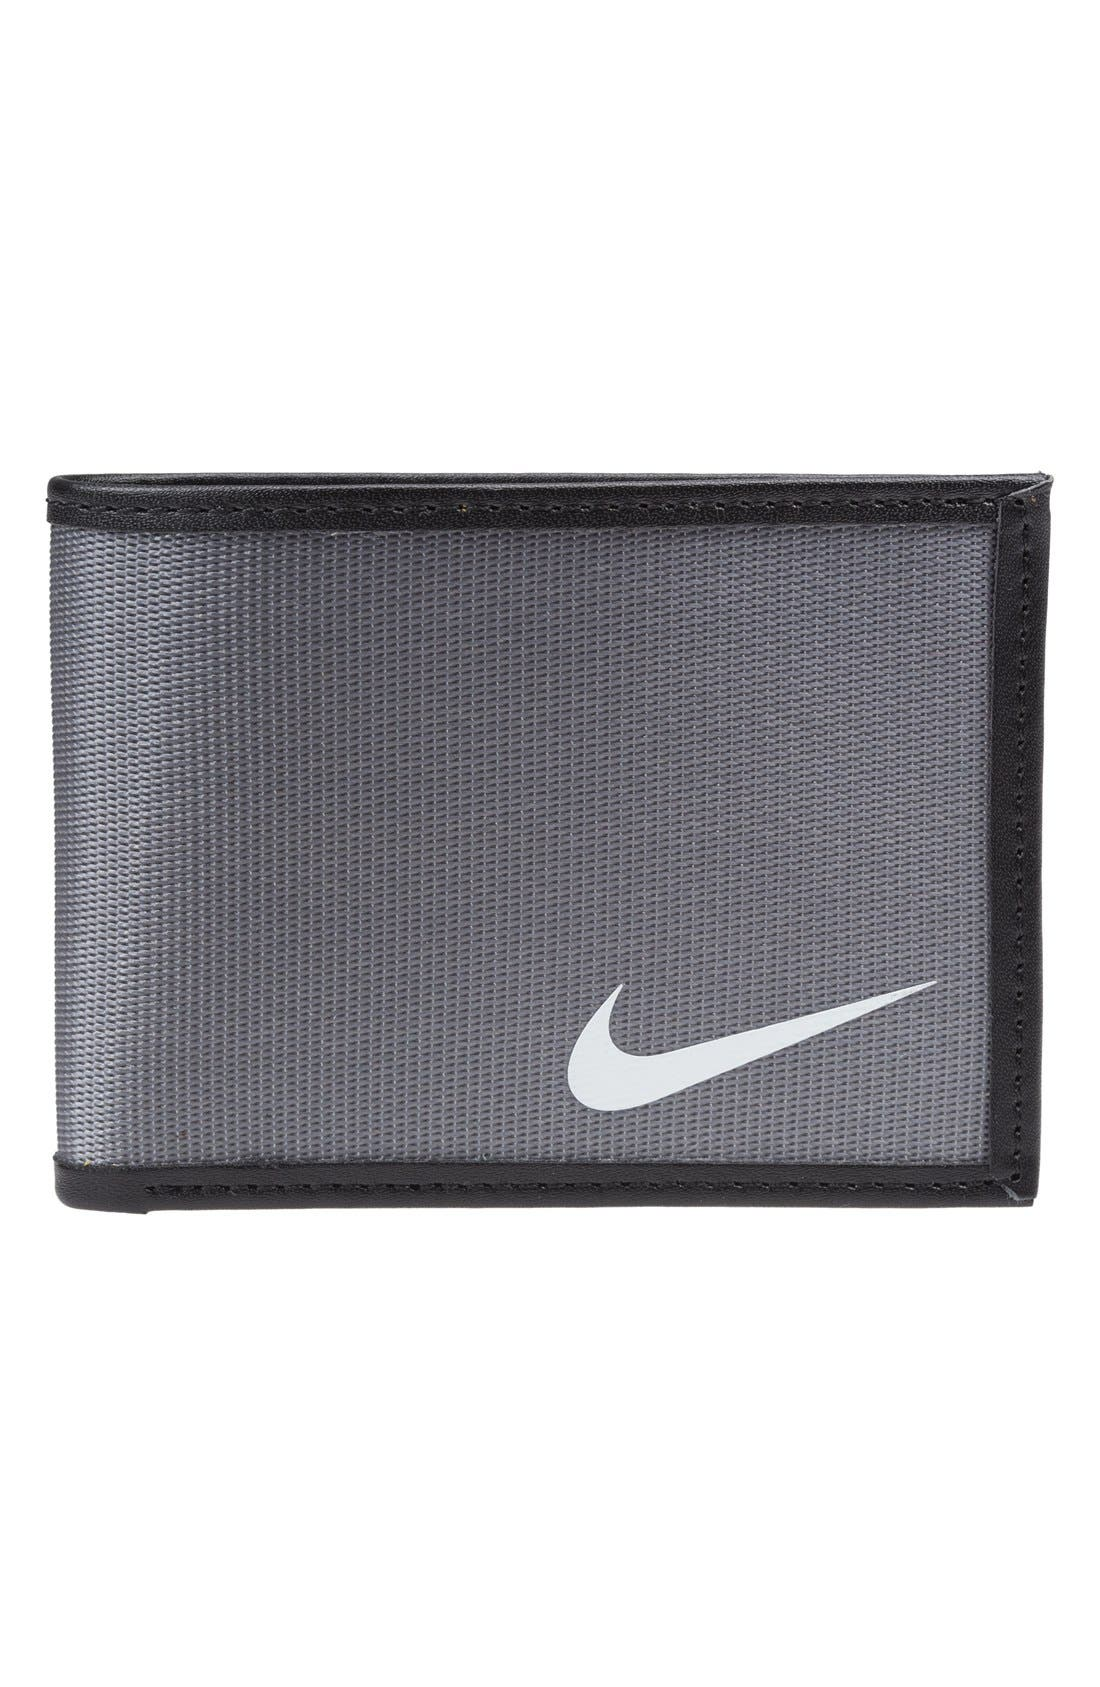 NIKE 'Tech Essentials' Wallet